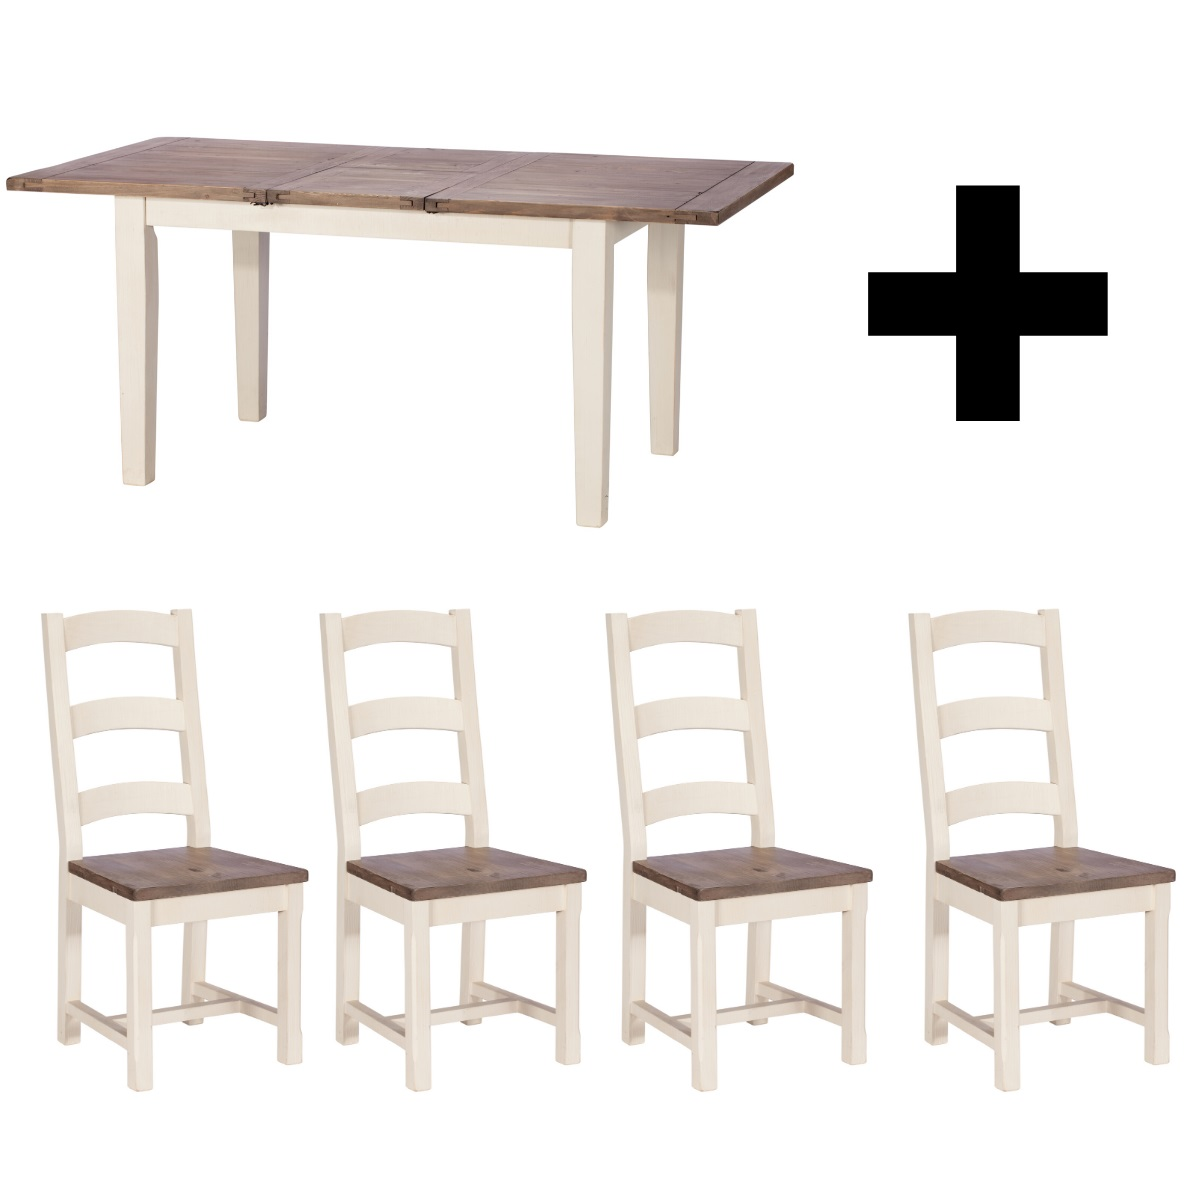 Maine Small Extending Dining Table and 4 Wooden Dining Chairs